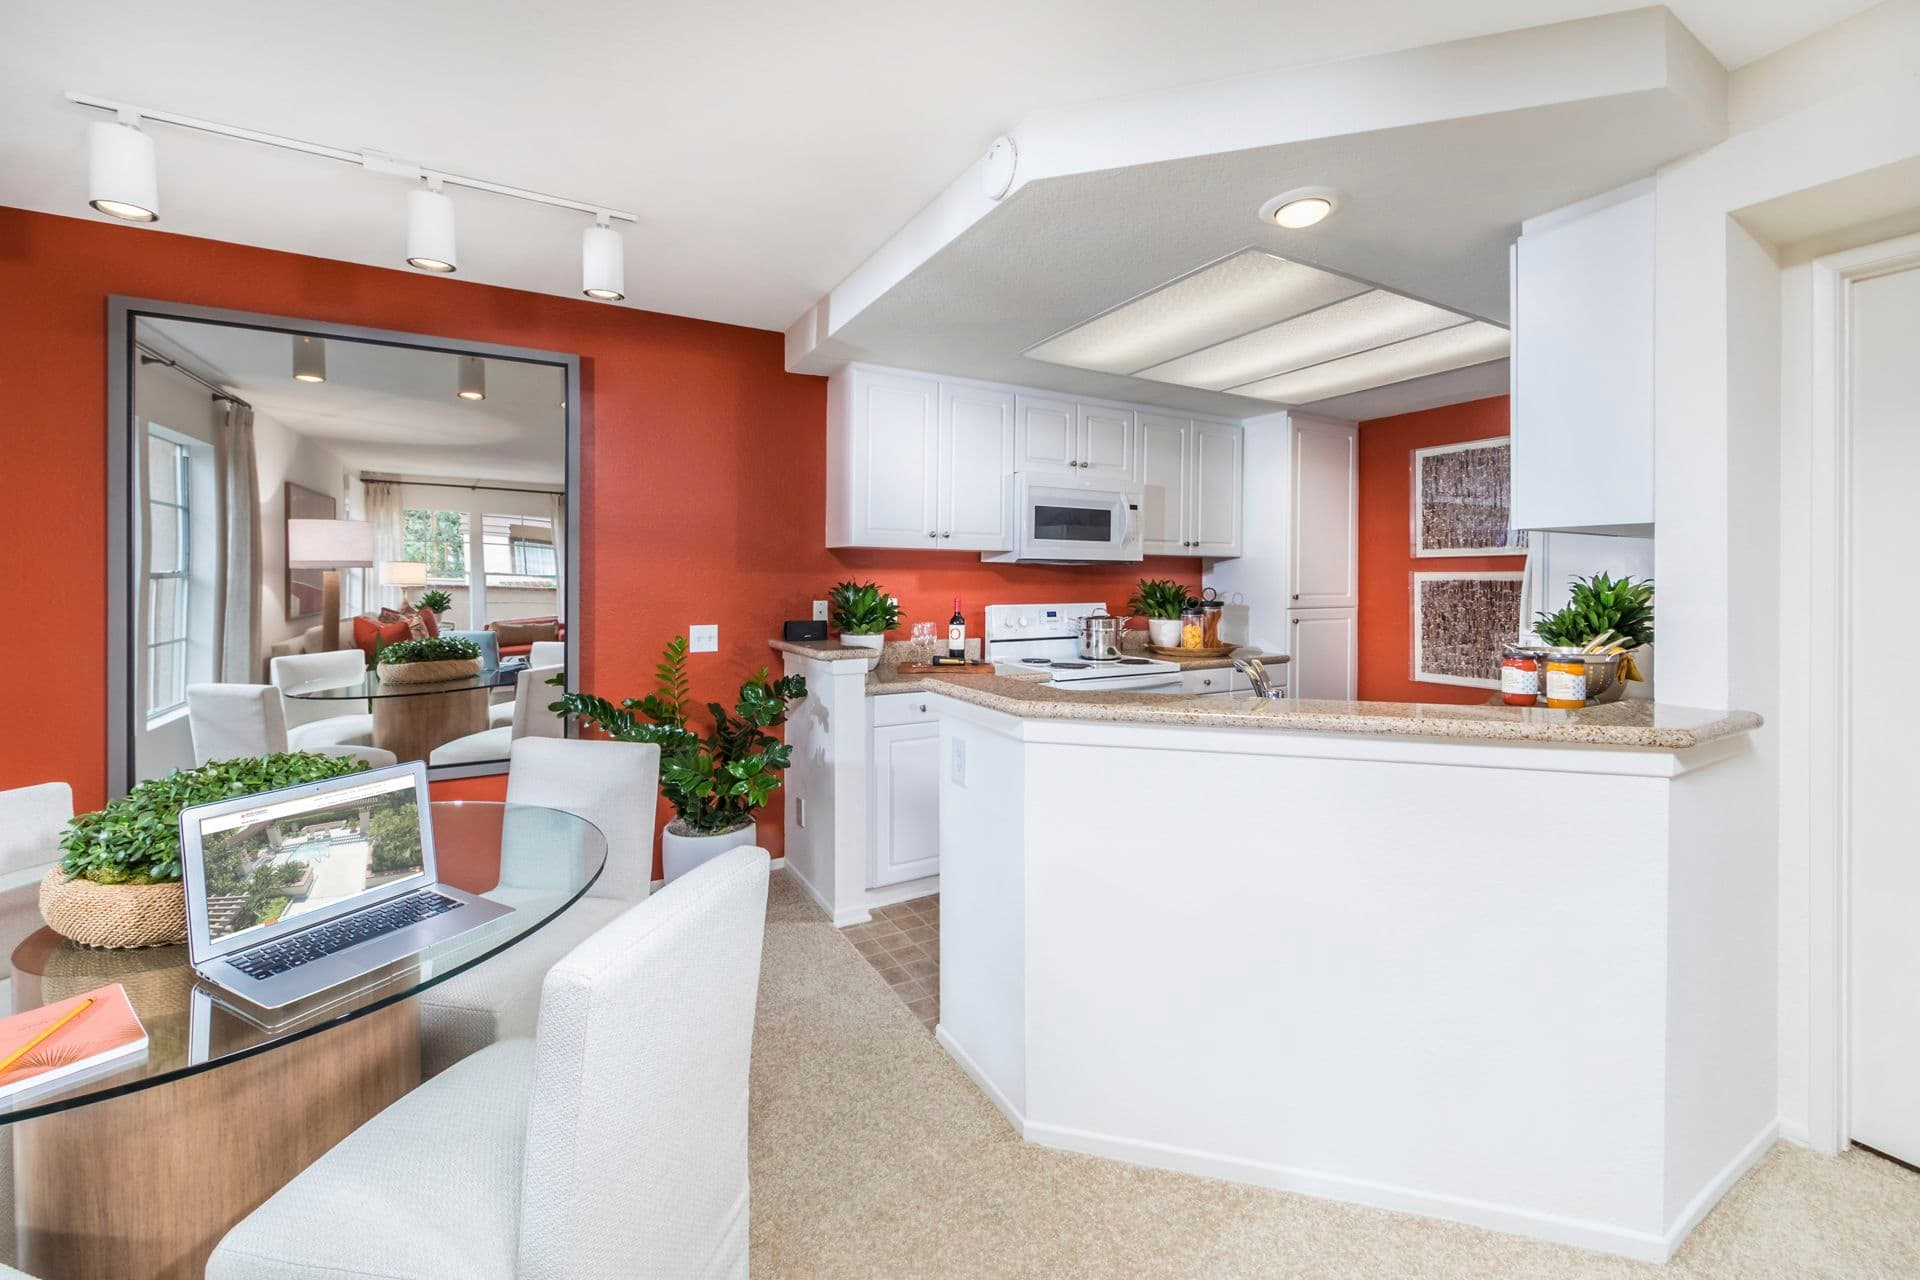 Interior view of kitchen and dining room at Rancho Maderas Apartment Homes in Tustin, CA.